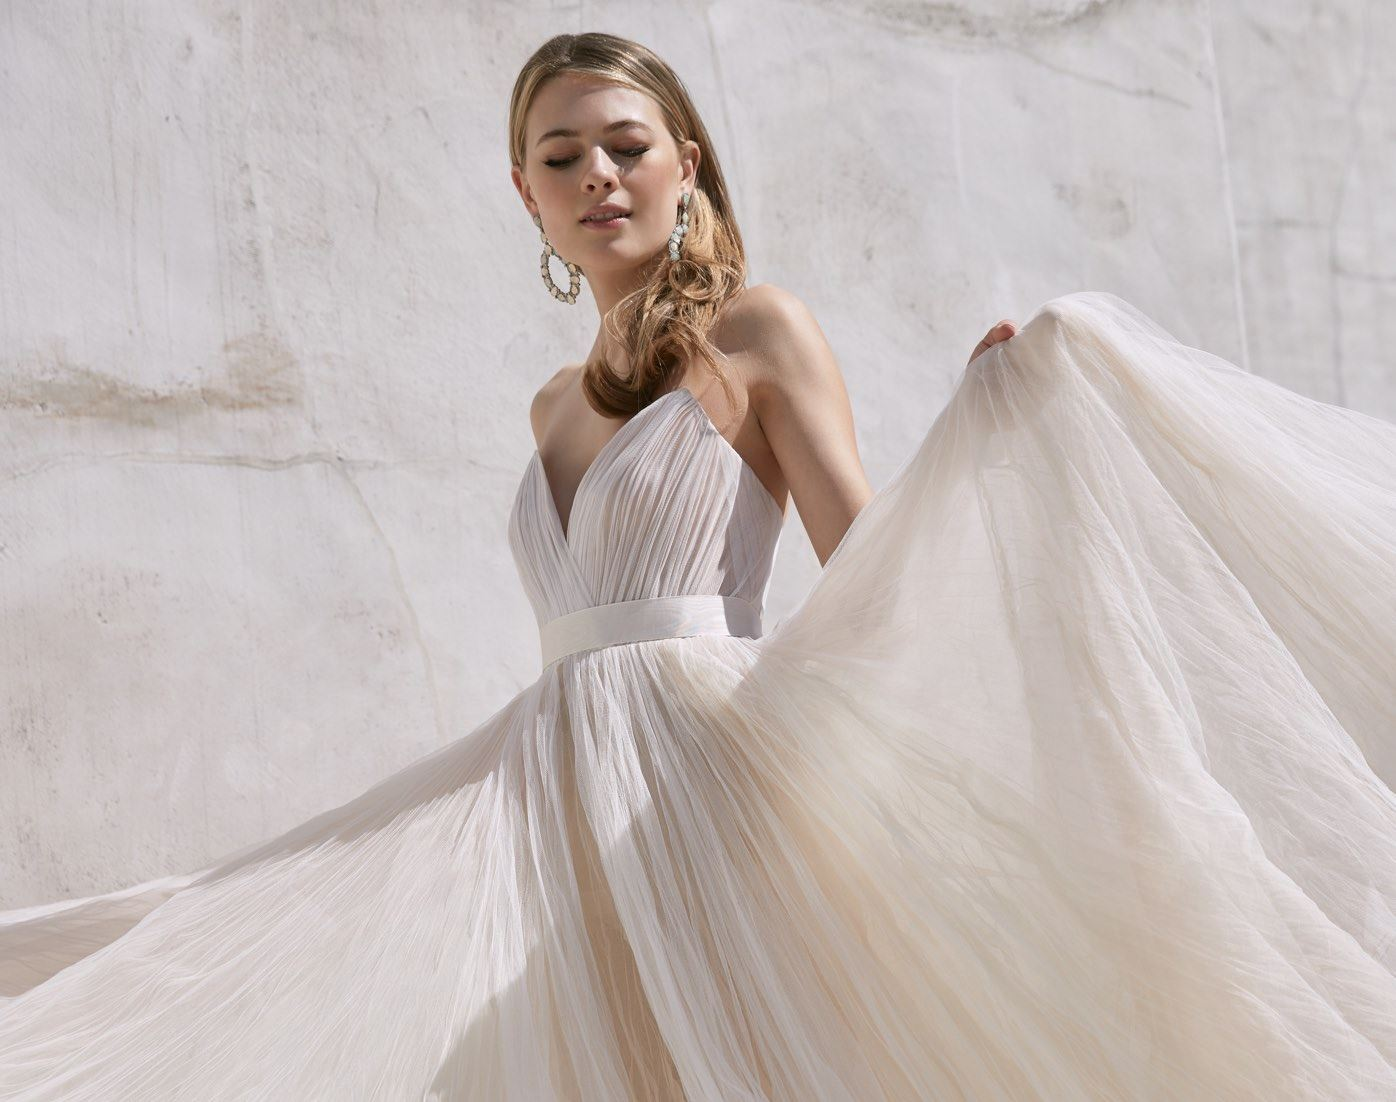 Model in Classy Ball wedding dress